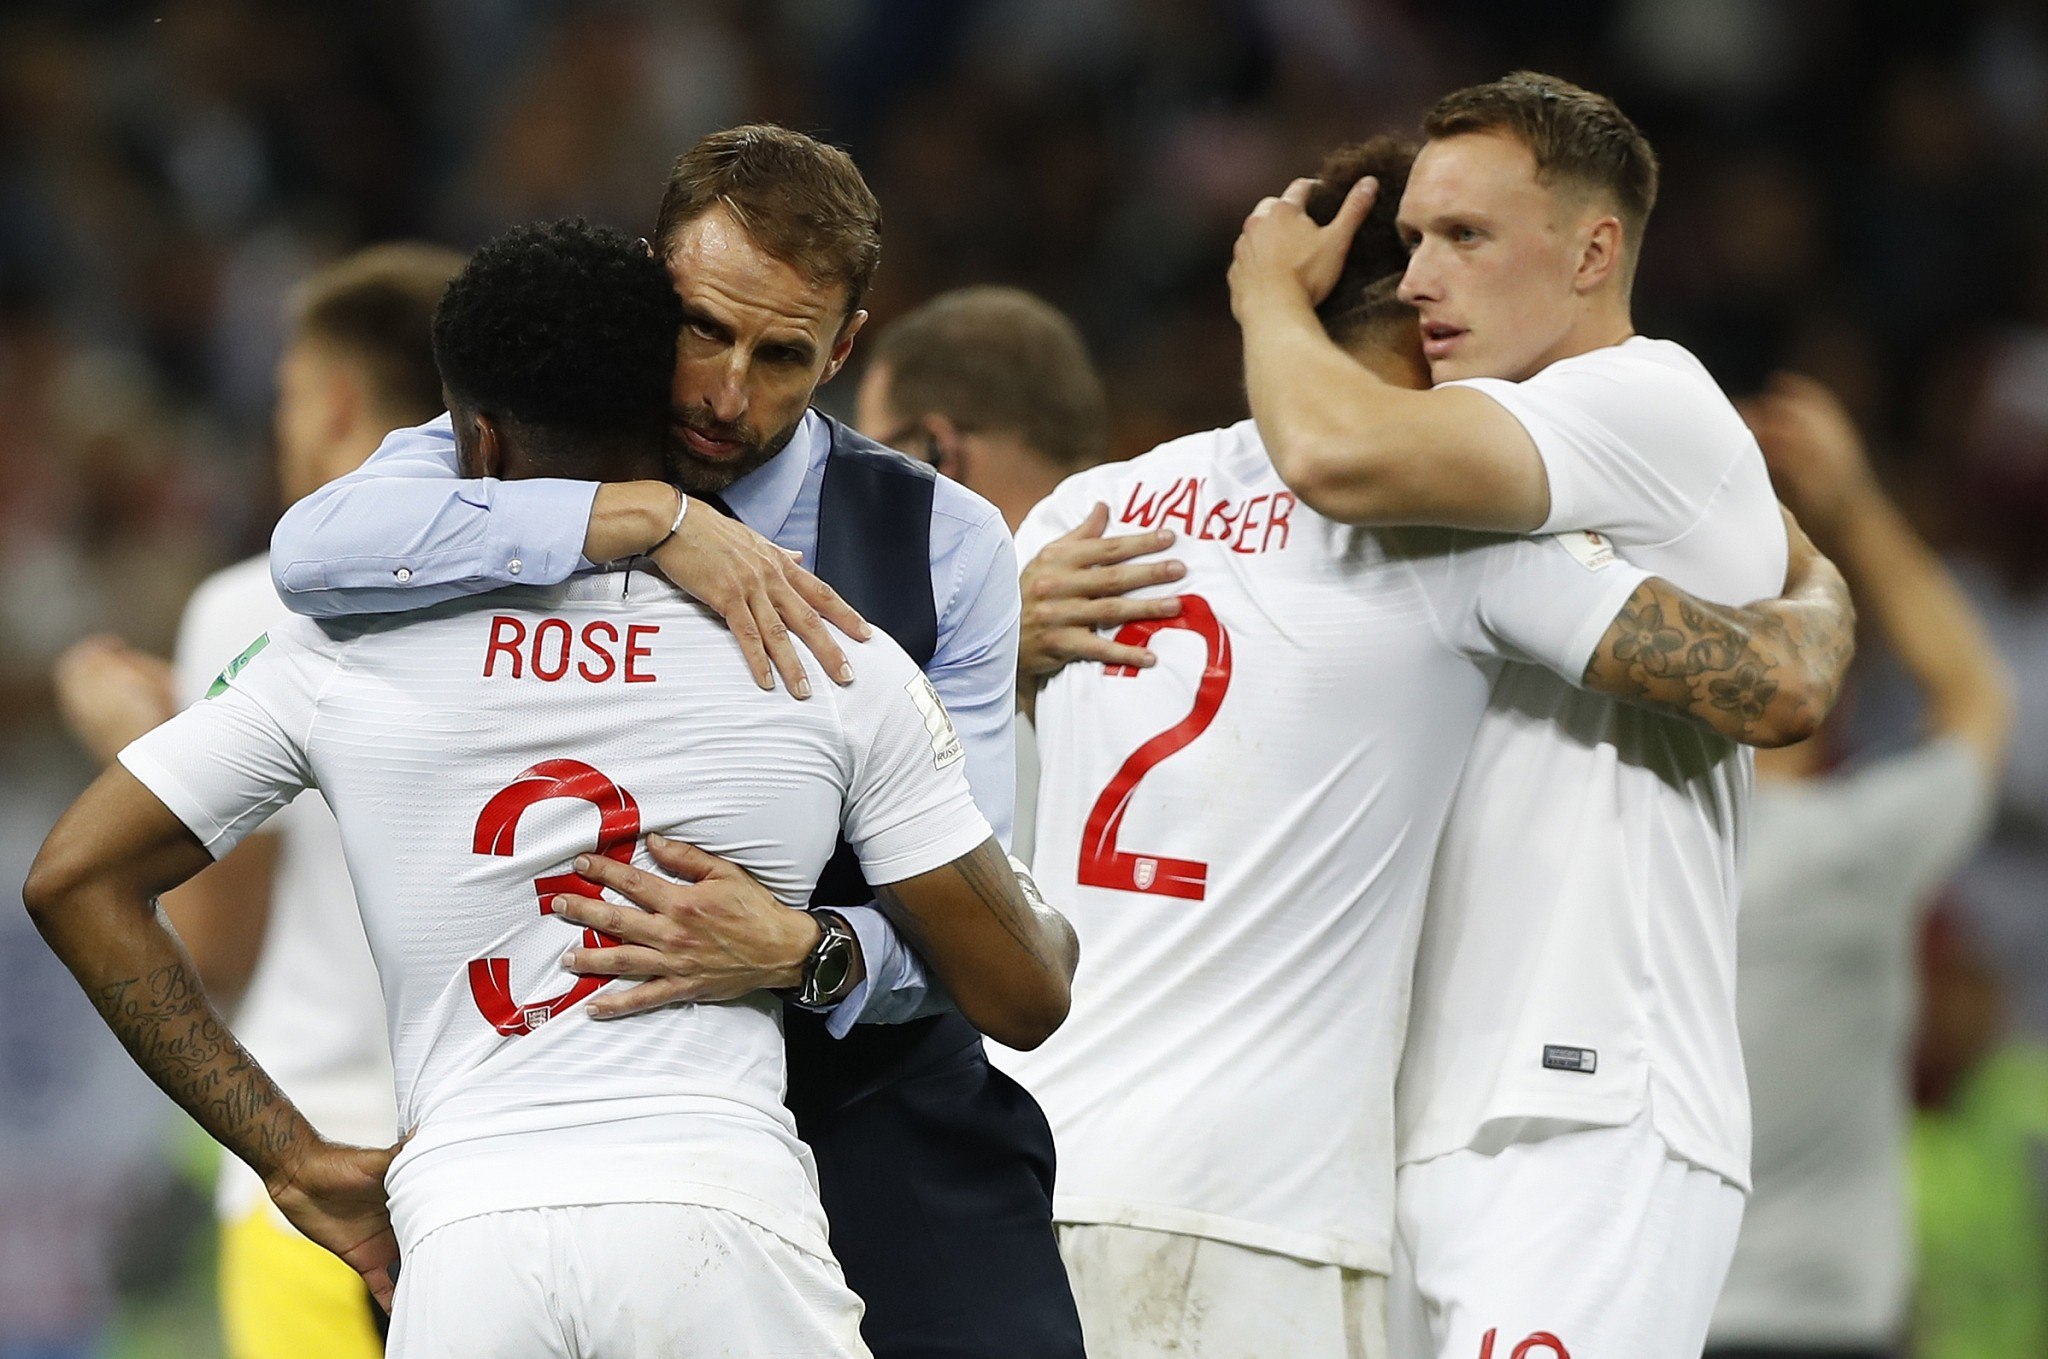 World Cup Losers England Score A Resonant Victory For Unity Diversity Decency The Times Of Israel